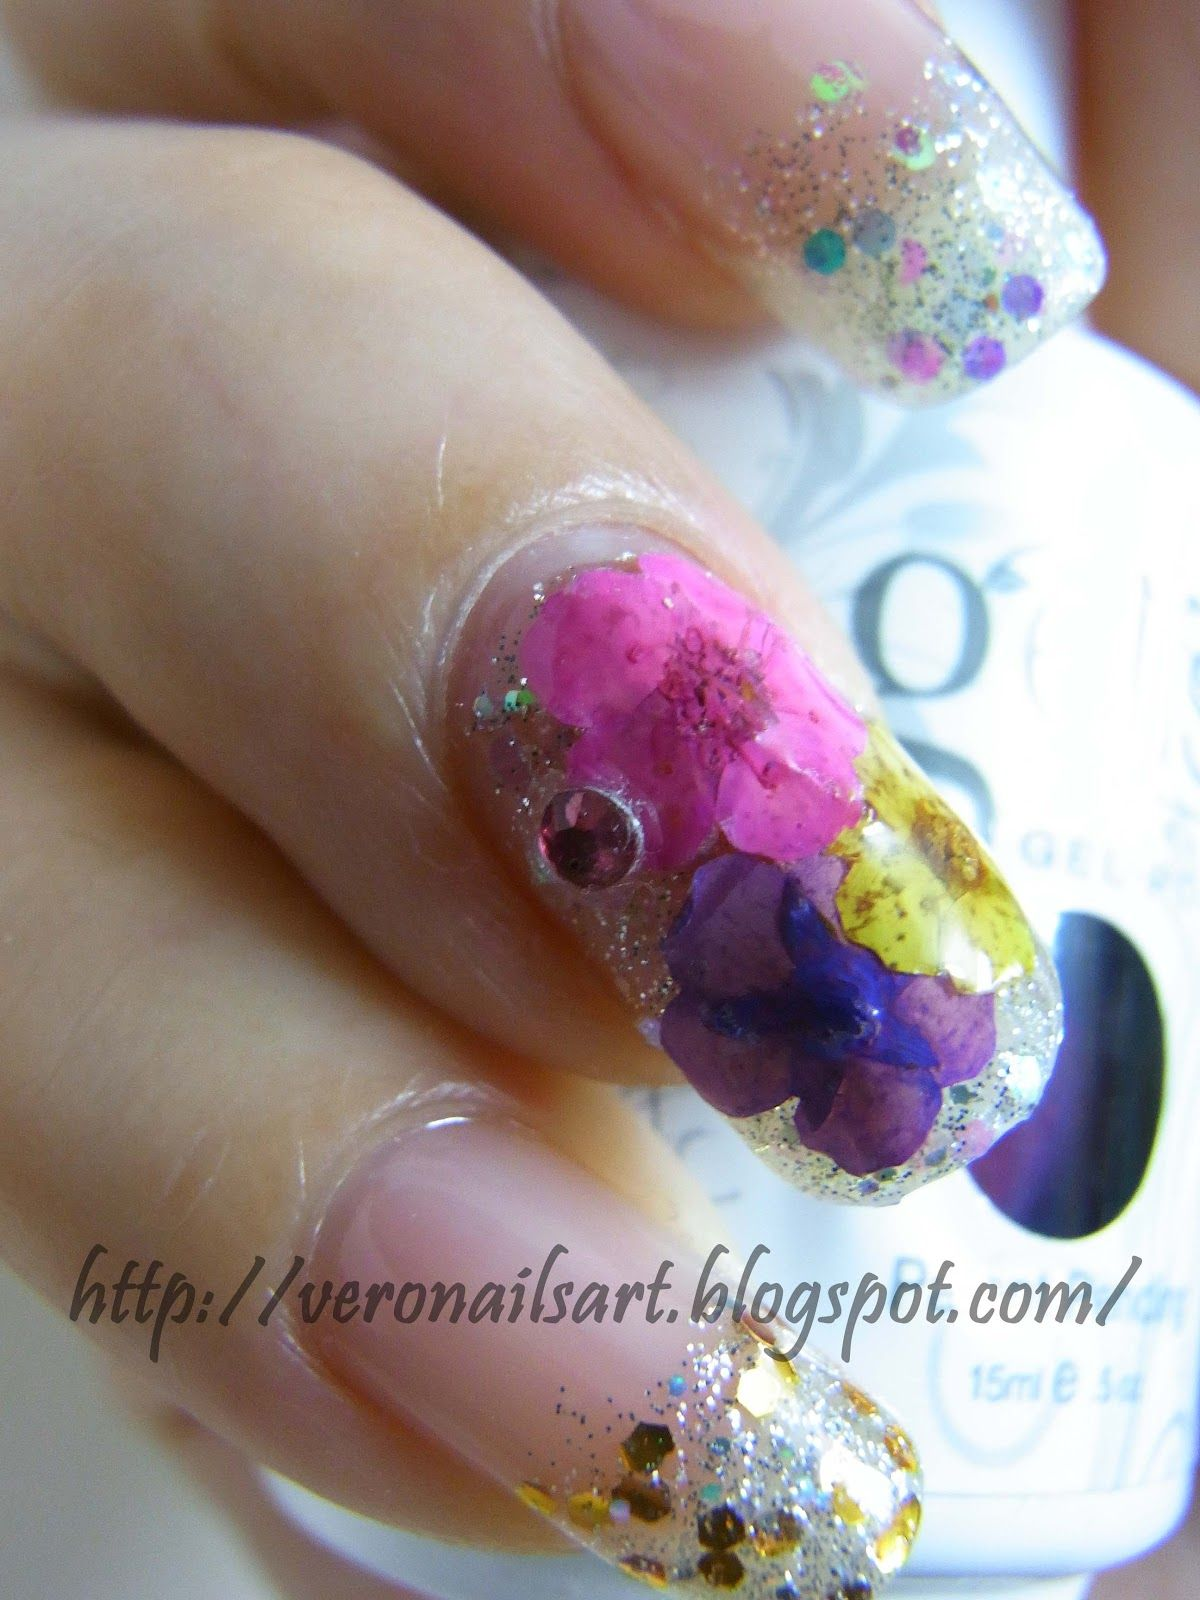 Glitter w/ Dry Flower | Juz Nails | Pinterest | Acrylic nail art ...